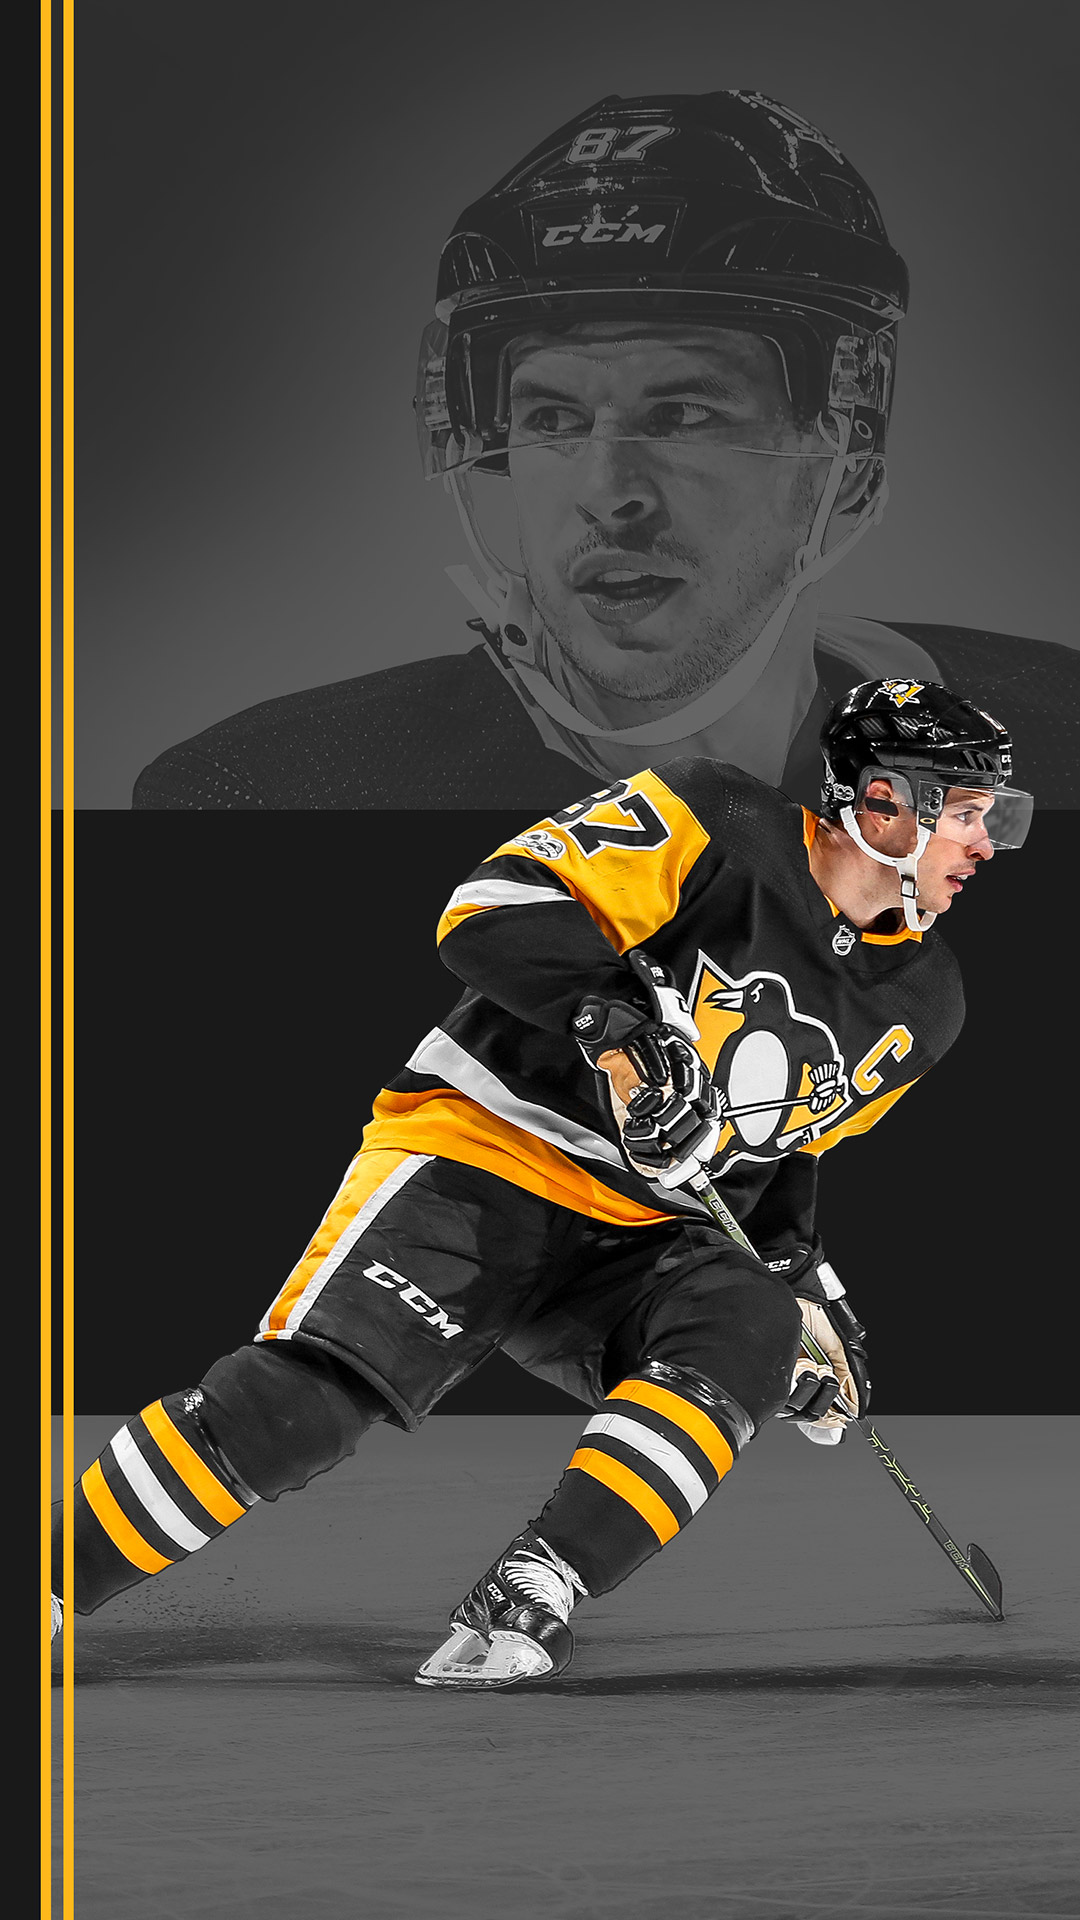 f2ba3ffa3ae Crosby Wallpaper - Mobile